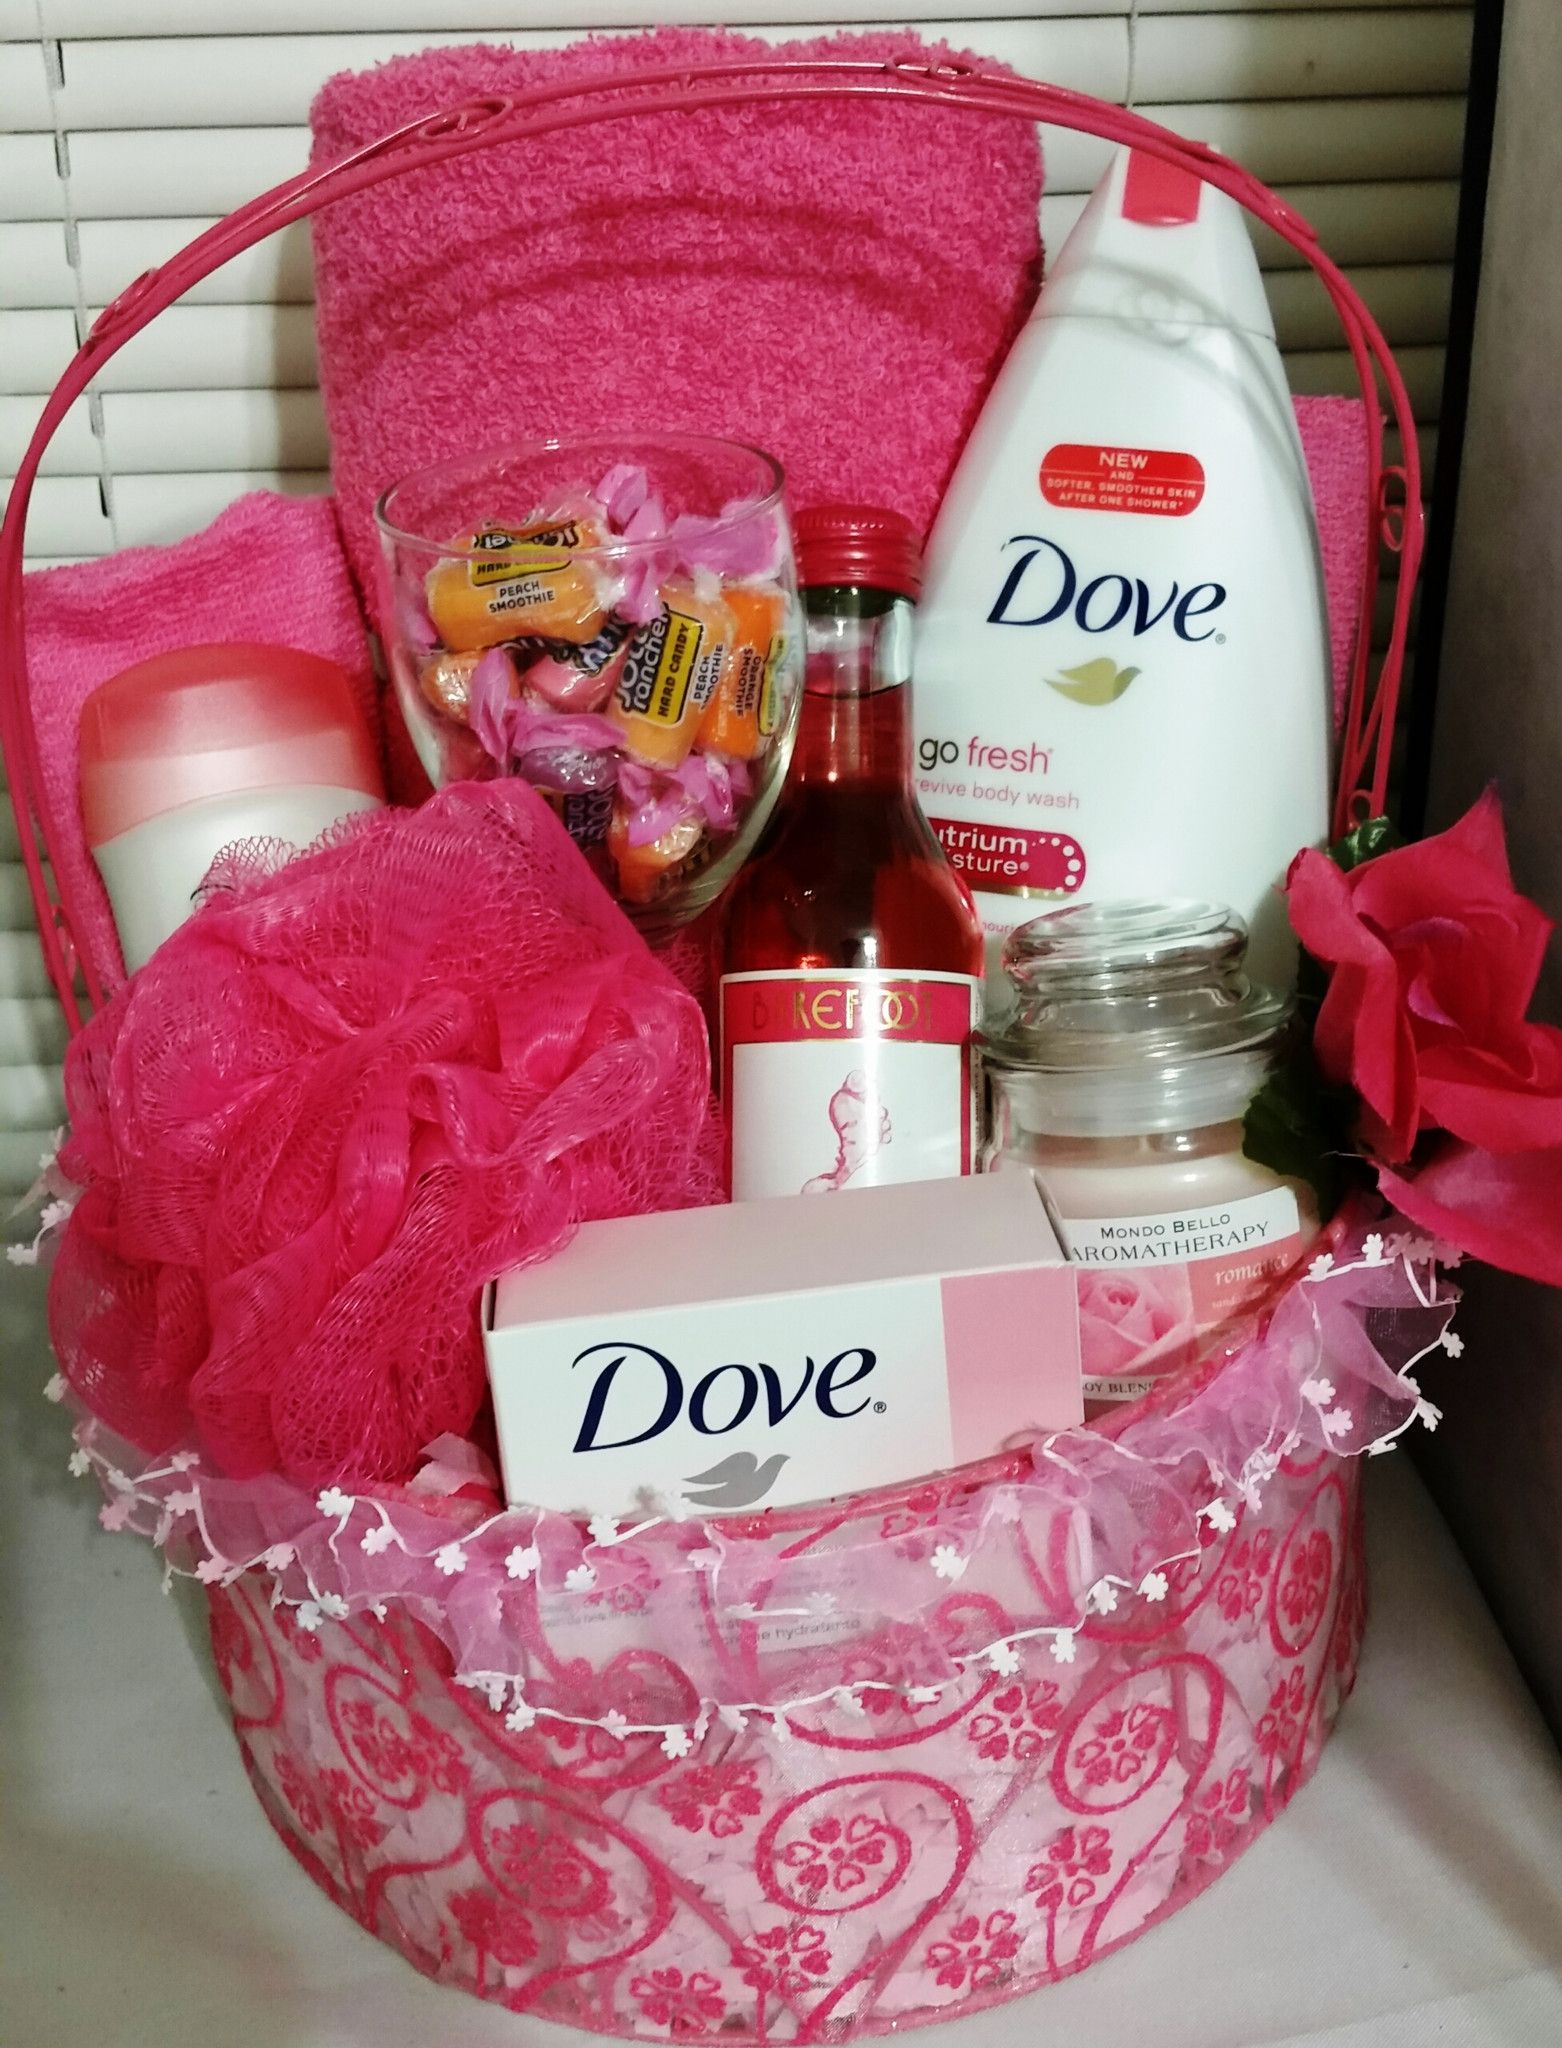 Dove Bath Basket - Pomegranate and Lemon Verbena | Baskets ...